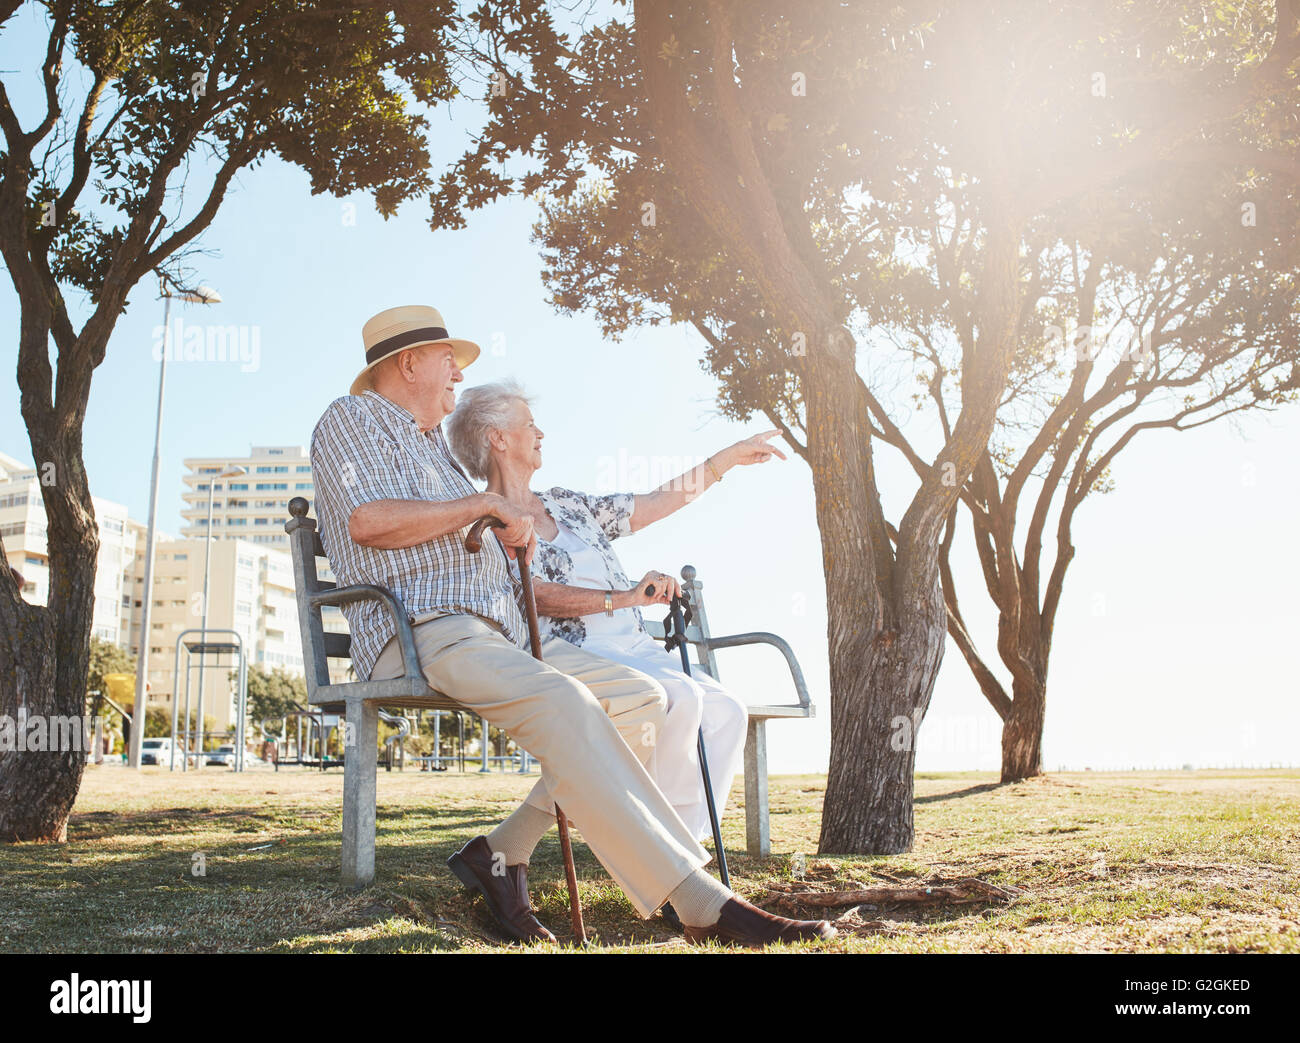 Outdoor shot of a senior couple sitting on a park bench with woman showing something interesting to her  husband. - Stock Image